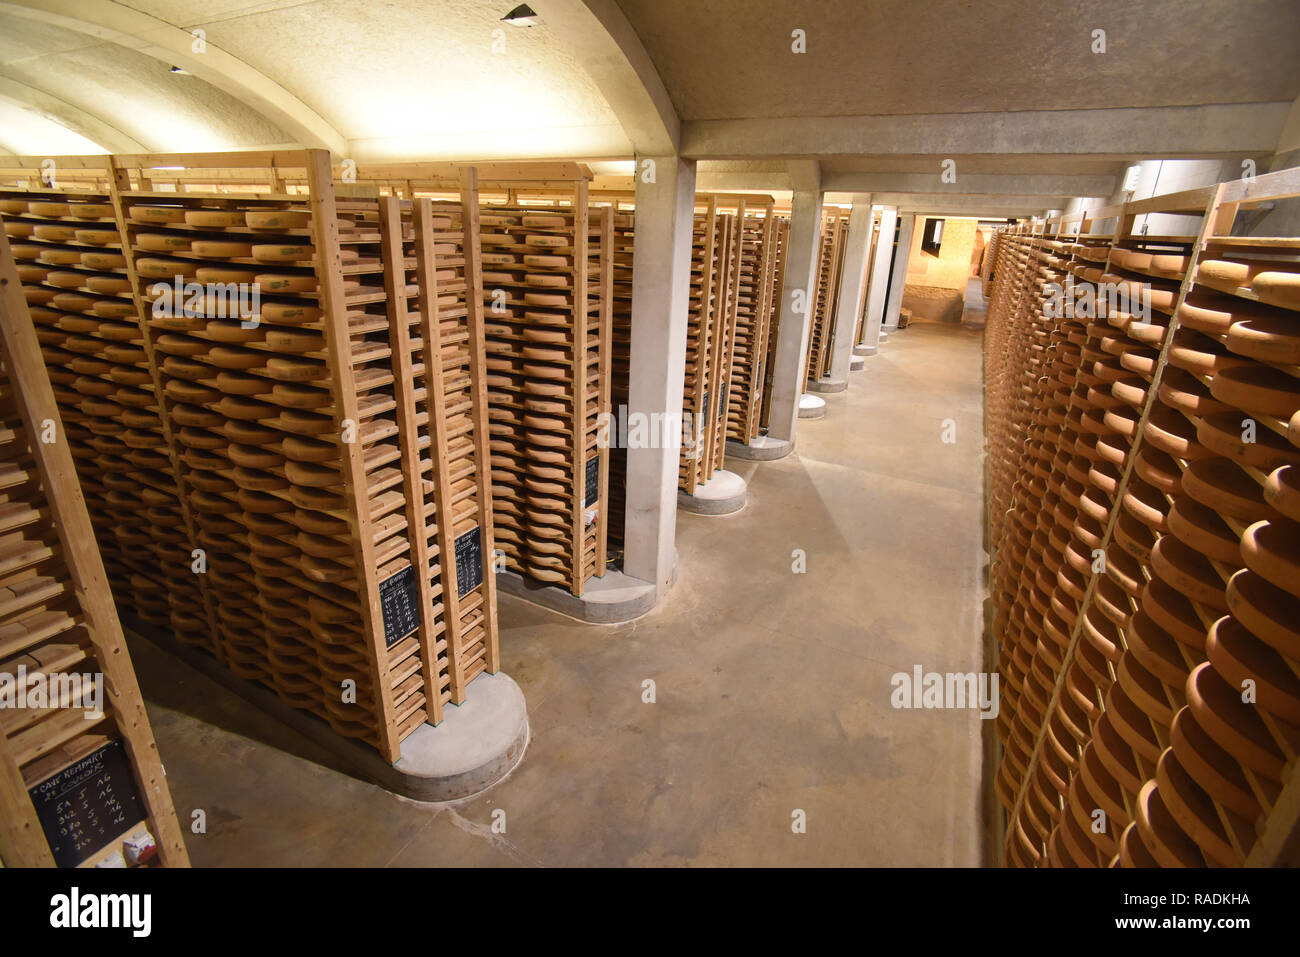 Comte cheese in the 'Petite du Fort Saint-Antoine' maturing cellars (eastern France) *** Local Caption *** - Stock Image